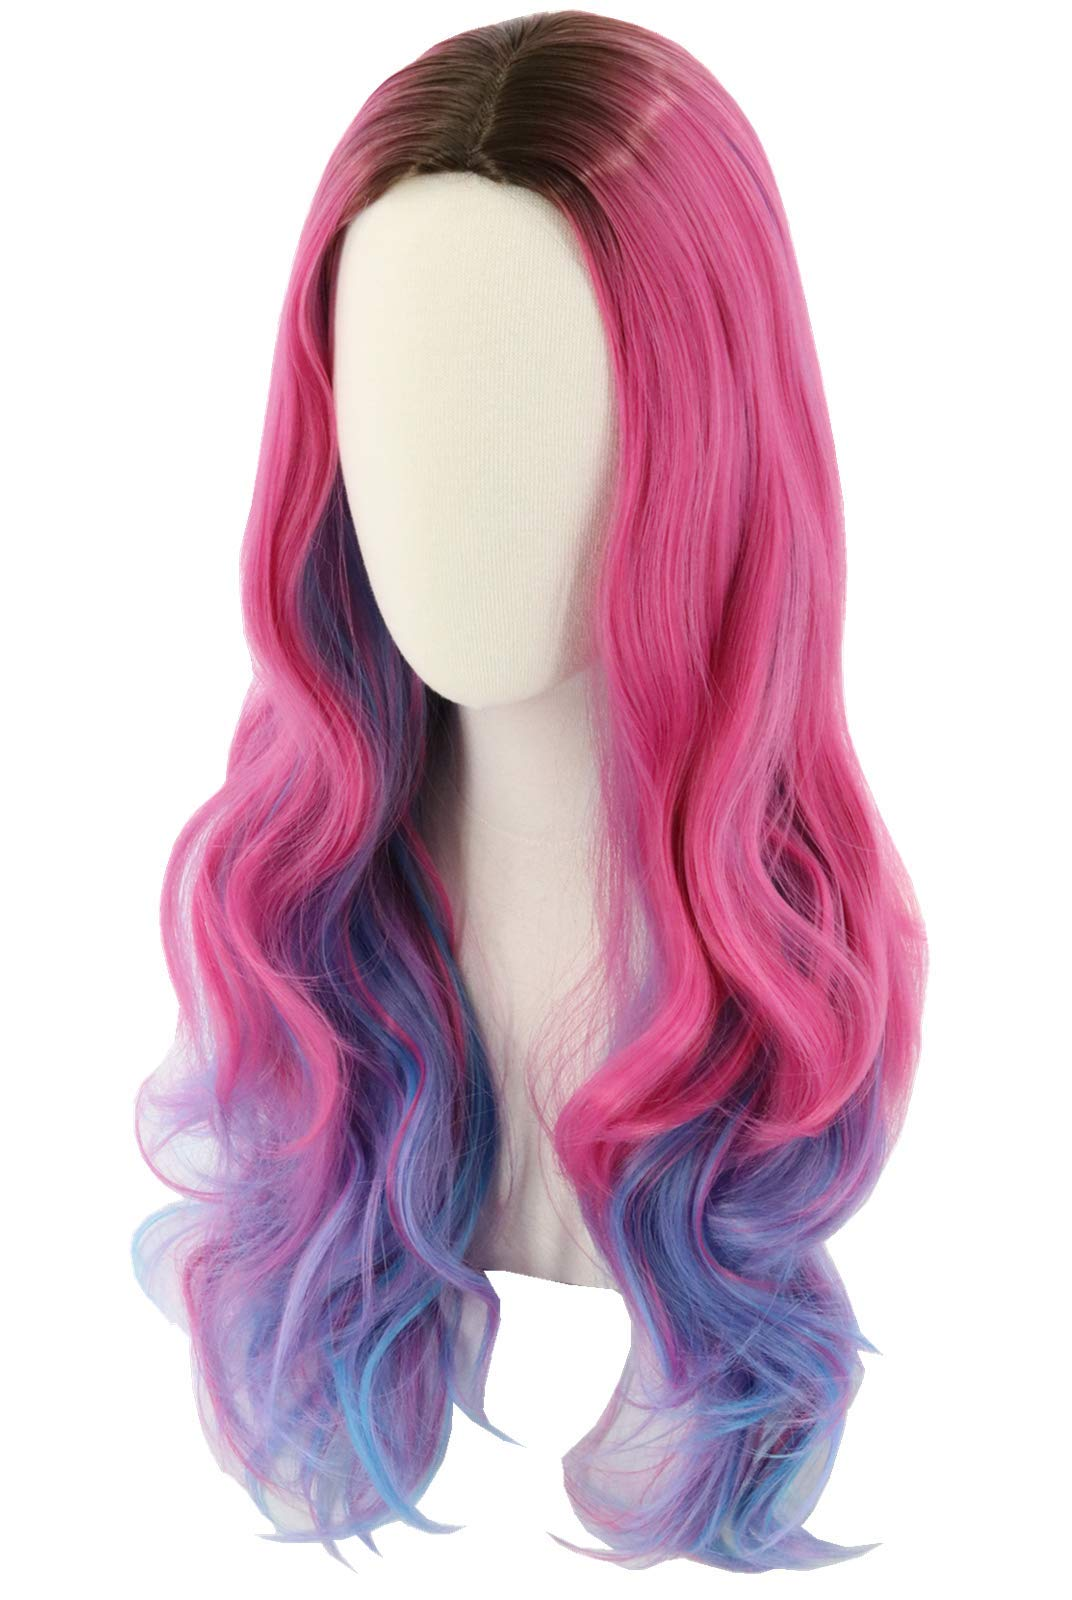 Topcosplay Kids Child Girls Wig Long Wavy Pink Mixed Blue Halloween Costume Party Wig Black Roots by Topcosplay